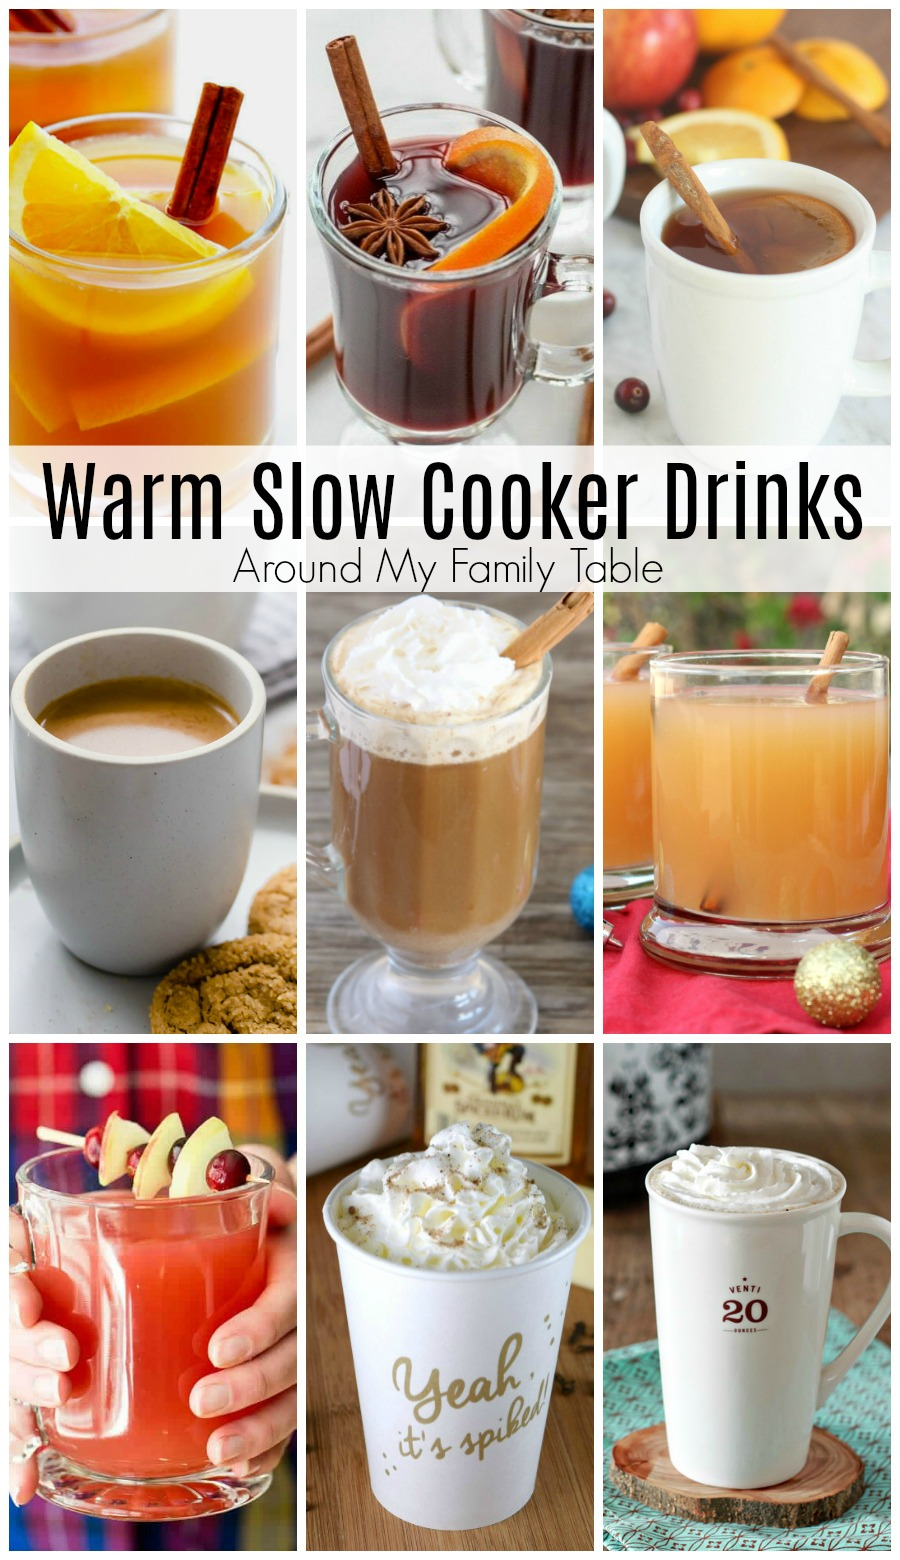 Hosting a party, then plug in your slow cooker and let the aroma of one of these Warm Slow Cooker Drinks fill your house and delight your guests this winter. #slowcooker #warmdrinks #hotdrinks #slowcookerdrinks via @slingmama